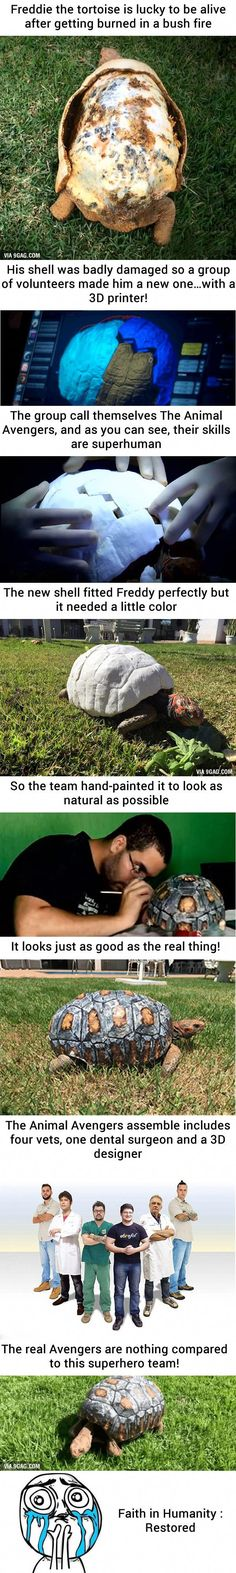 [Warning Strong Graphic] Injured Tortoise Receives World's F.- [Warning Strong Graphic] Injured Tortoise Receives World's First Printed Sh… [Warning Strong Graphic] Injured Tortoise Receives World's First Printed Shell - Cute Funny Animals, Cute Baby Animals, Funny Cute, Animals And Pets, Sweet Stories, Cute Stories, Human Kindness, Wale, Faith In Humanity Restored